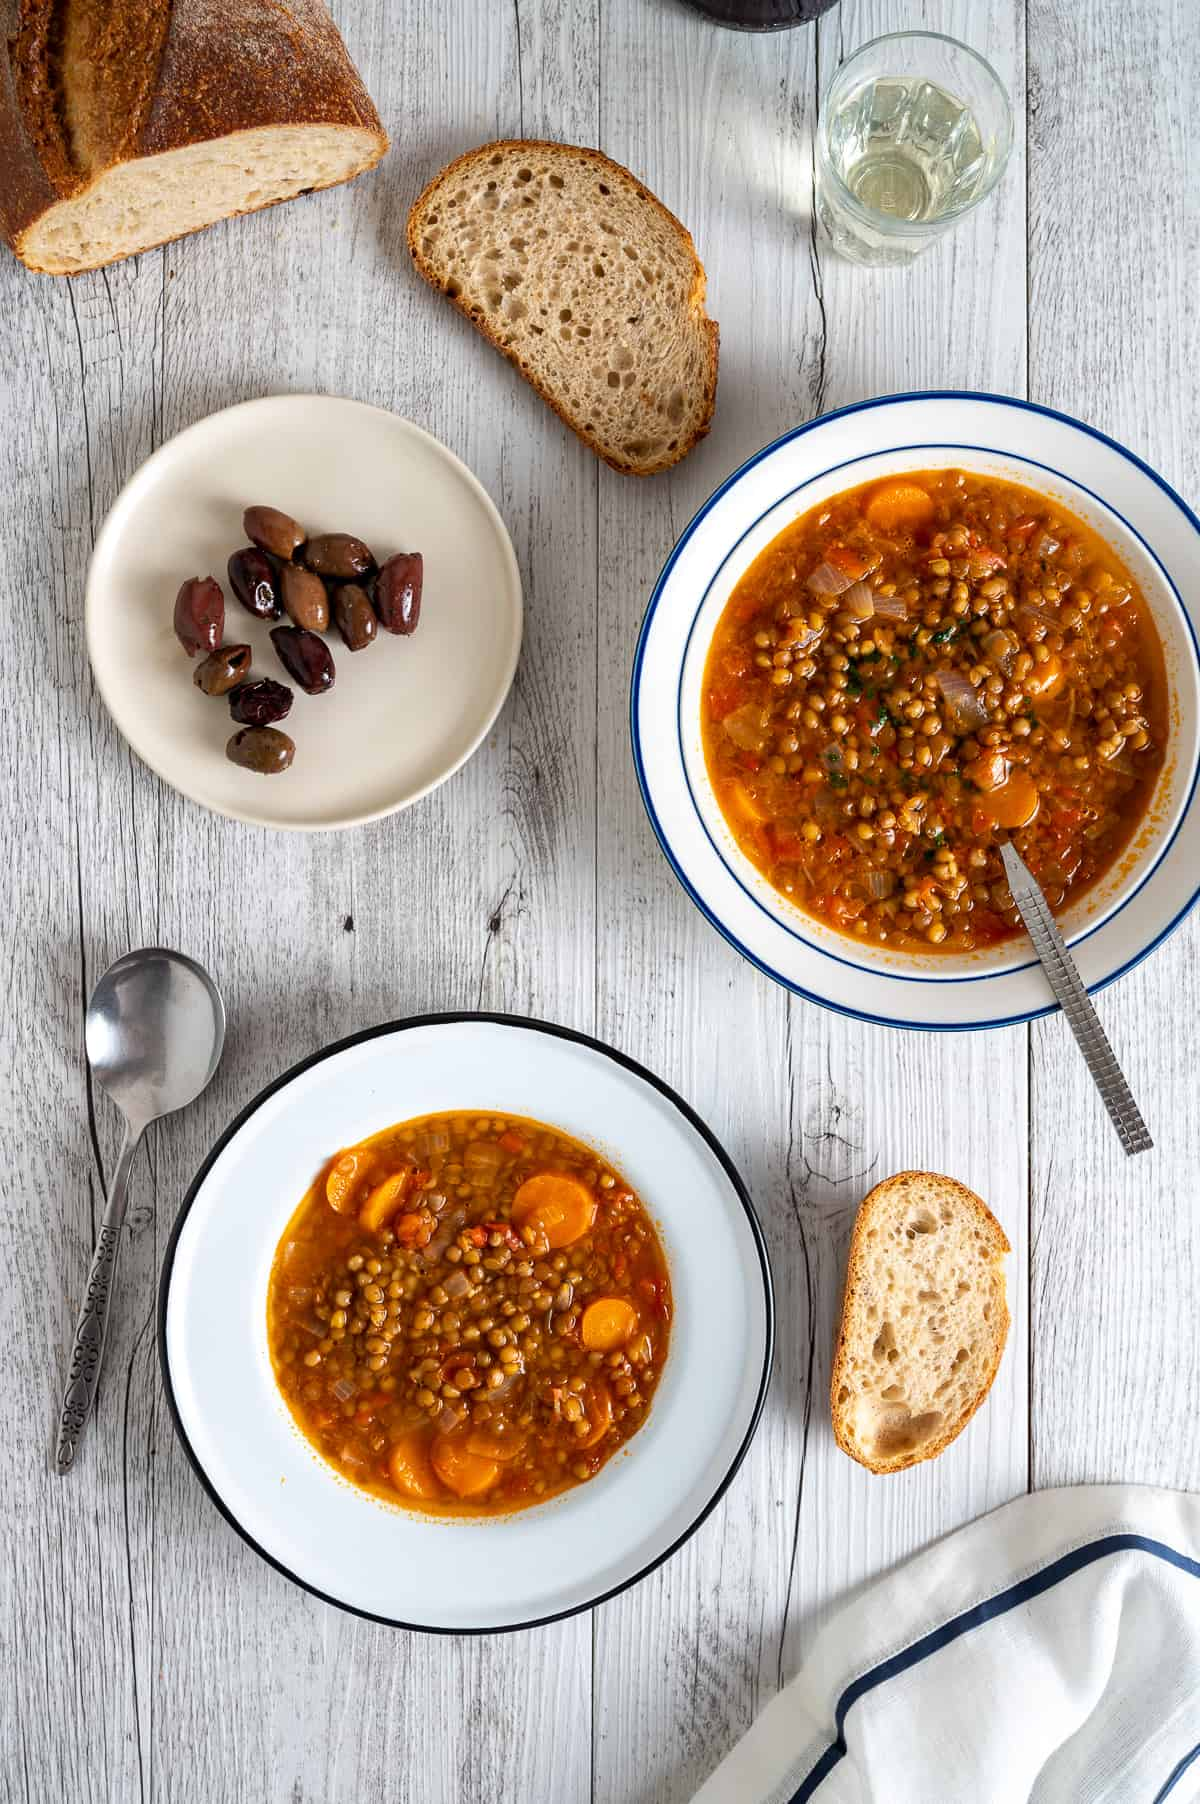 two bowls of lentil soup served on a white table with a side of olives and bread